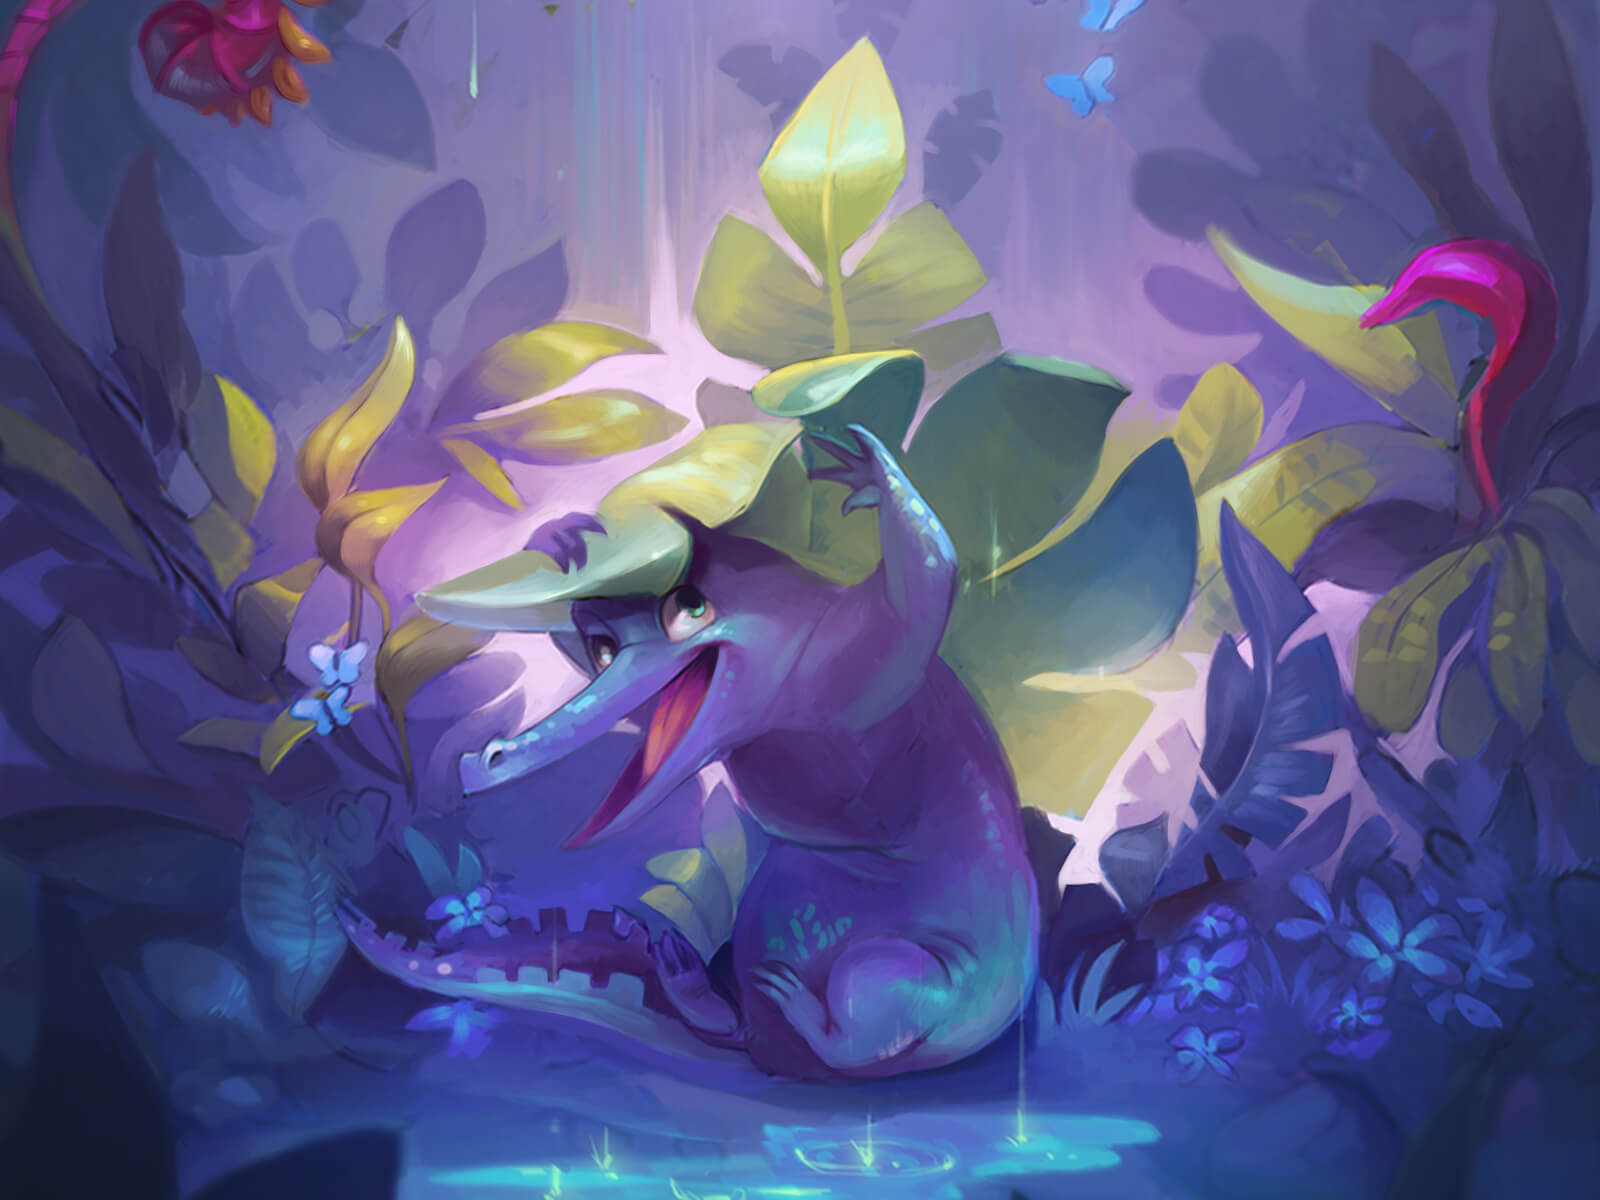 digital painting of a happy purple alligator hiding playfully under a large leaf while a bird flies overhead